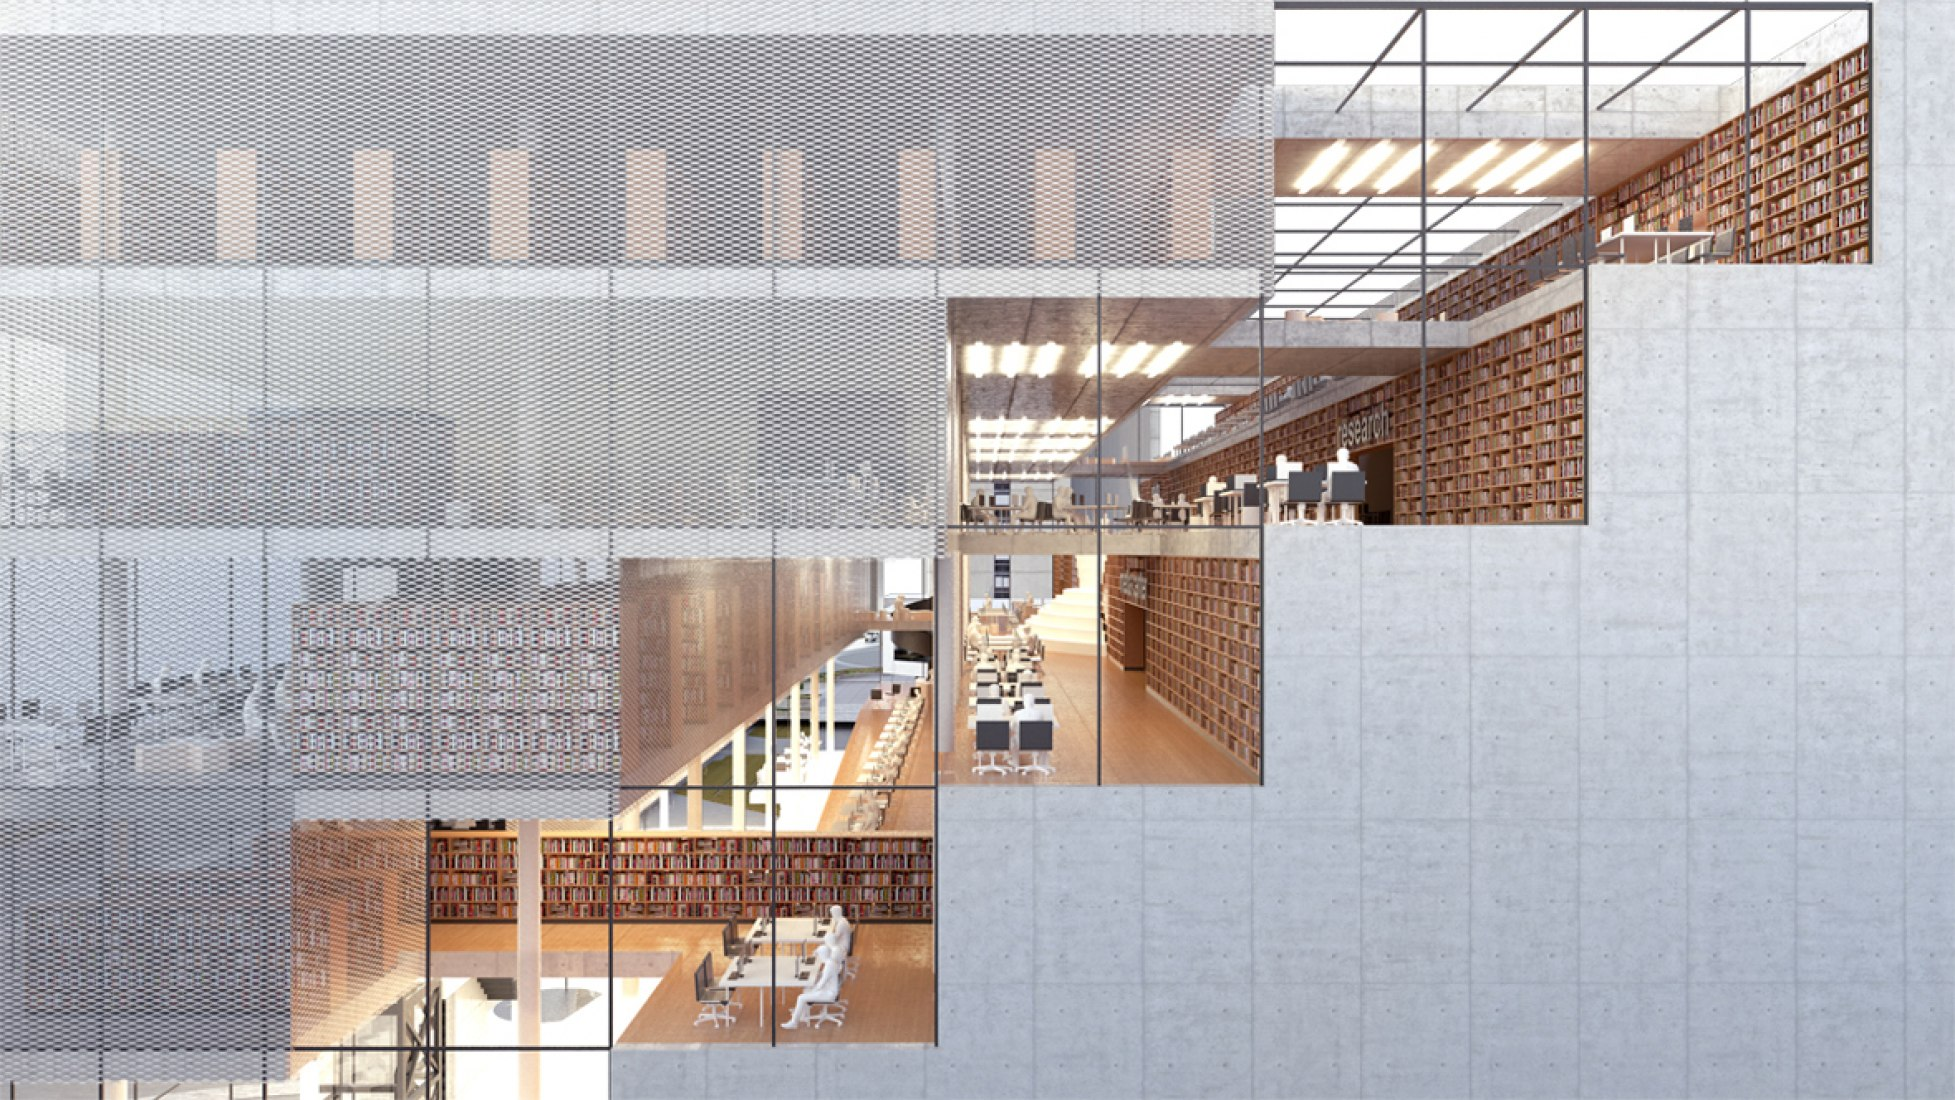 Outside vision, rendering. Varna Regional Library by Architects for Urbanity. Image © Architects for Urbanity.